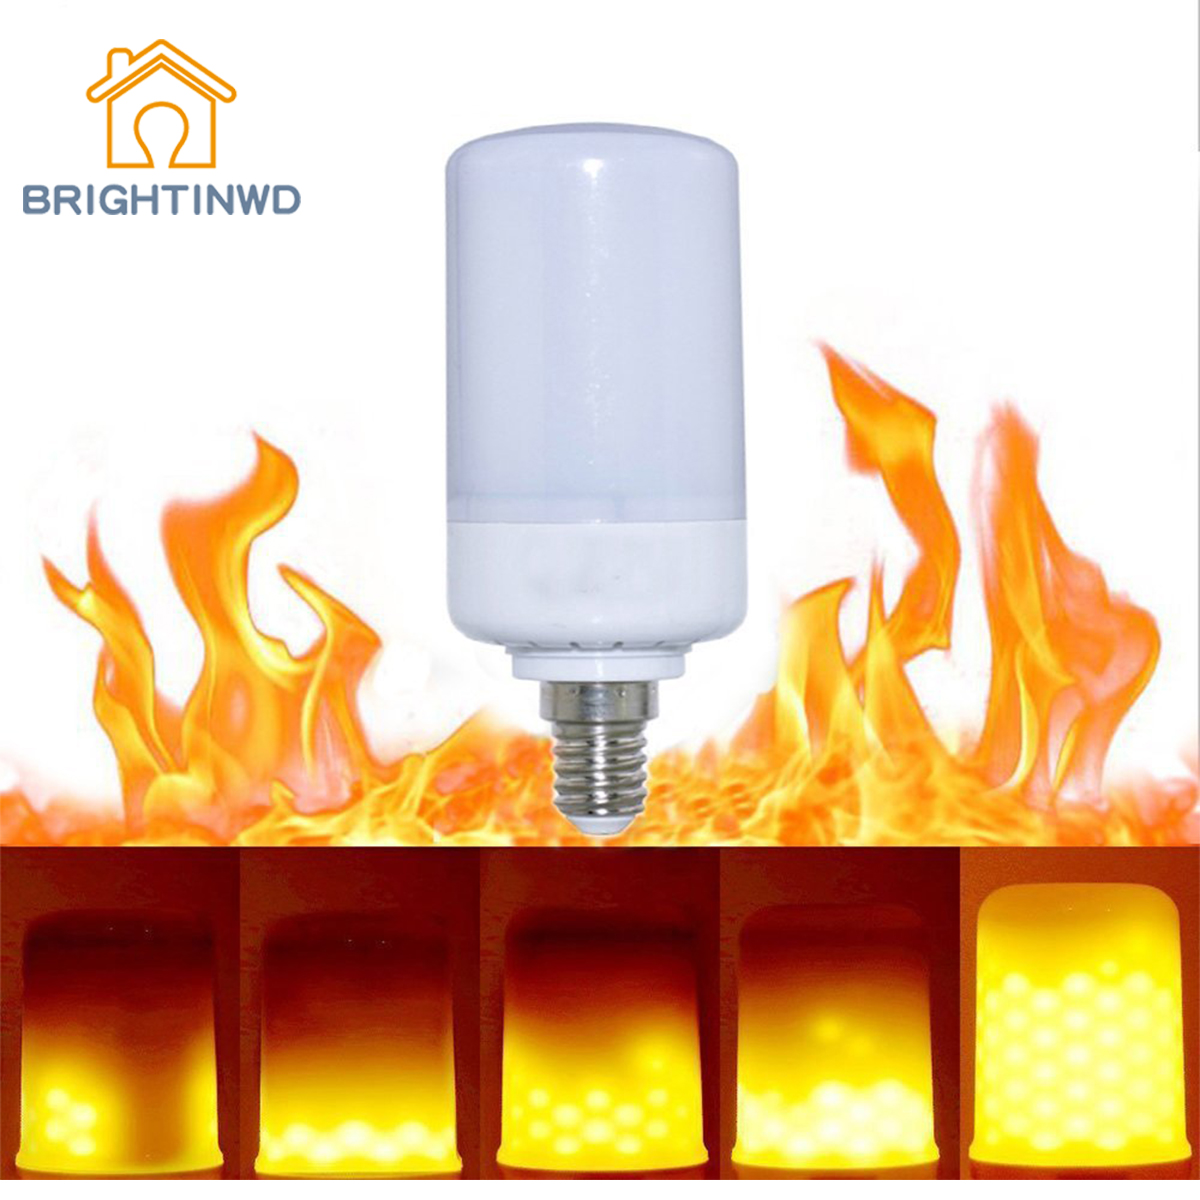 BRIGHTINWD New LED Simulation Dynamic Flashing Flame 5W Corn Candle Torch Torch Flame Bulb